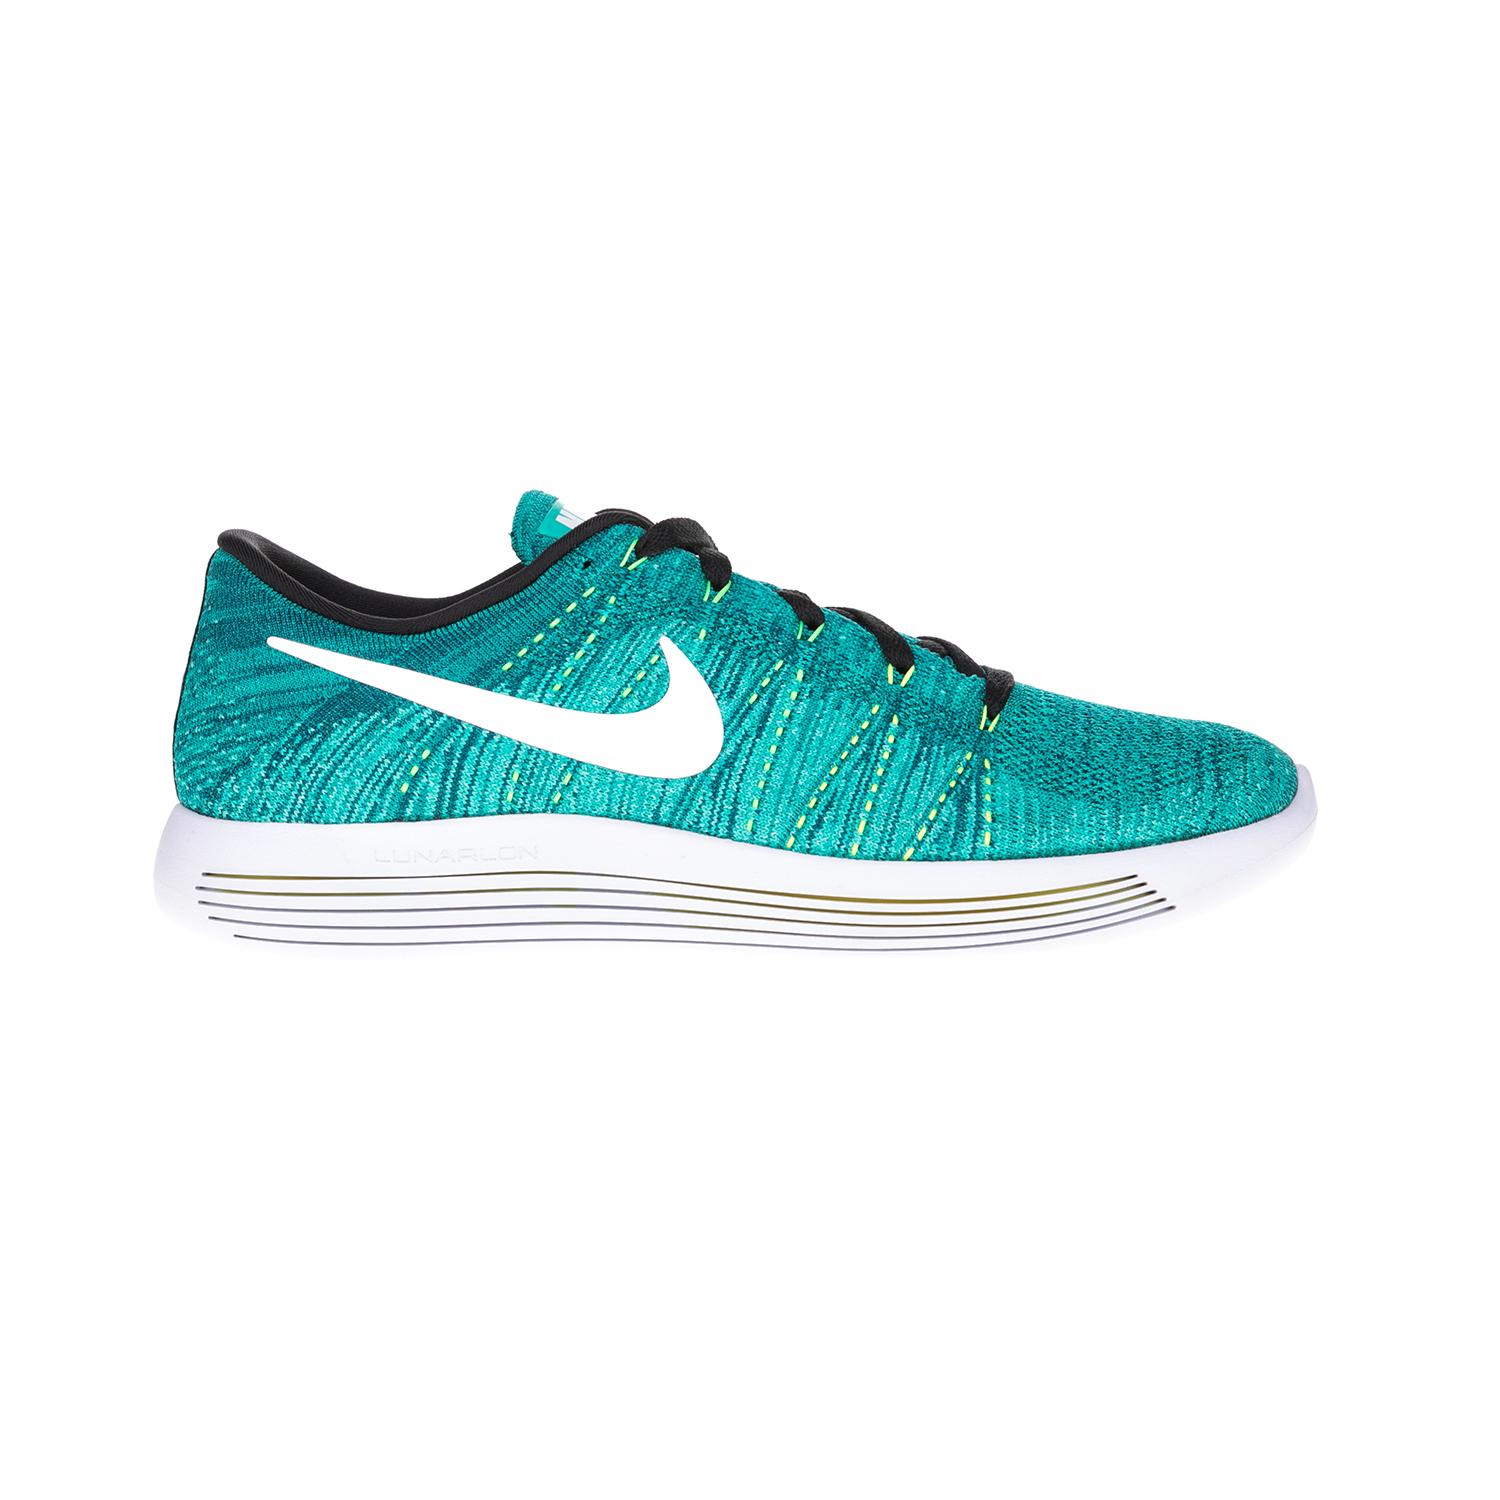 NIKE – Ανδρικά παπούτσια NIKE LUNAREPIC LOW FLYKNIT πράσινα